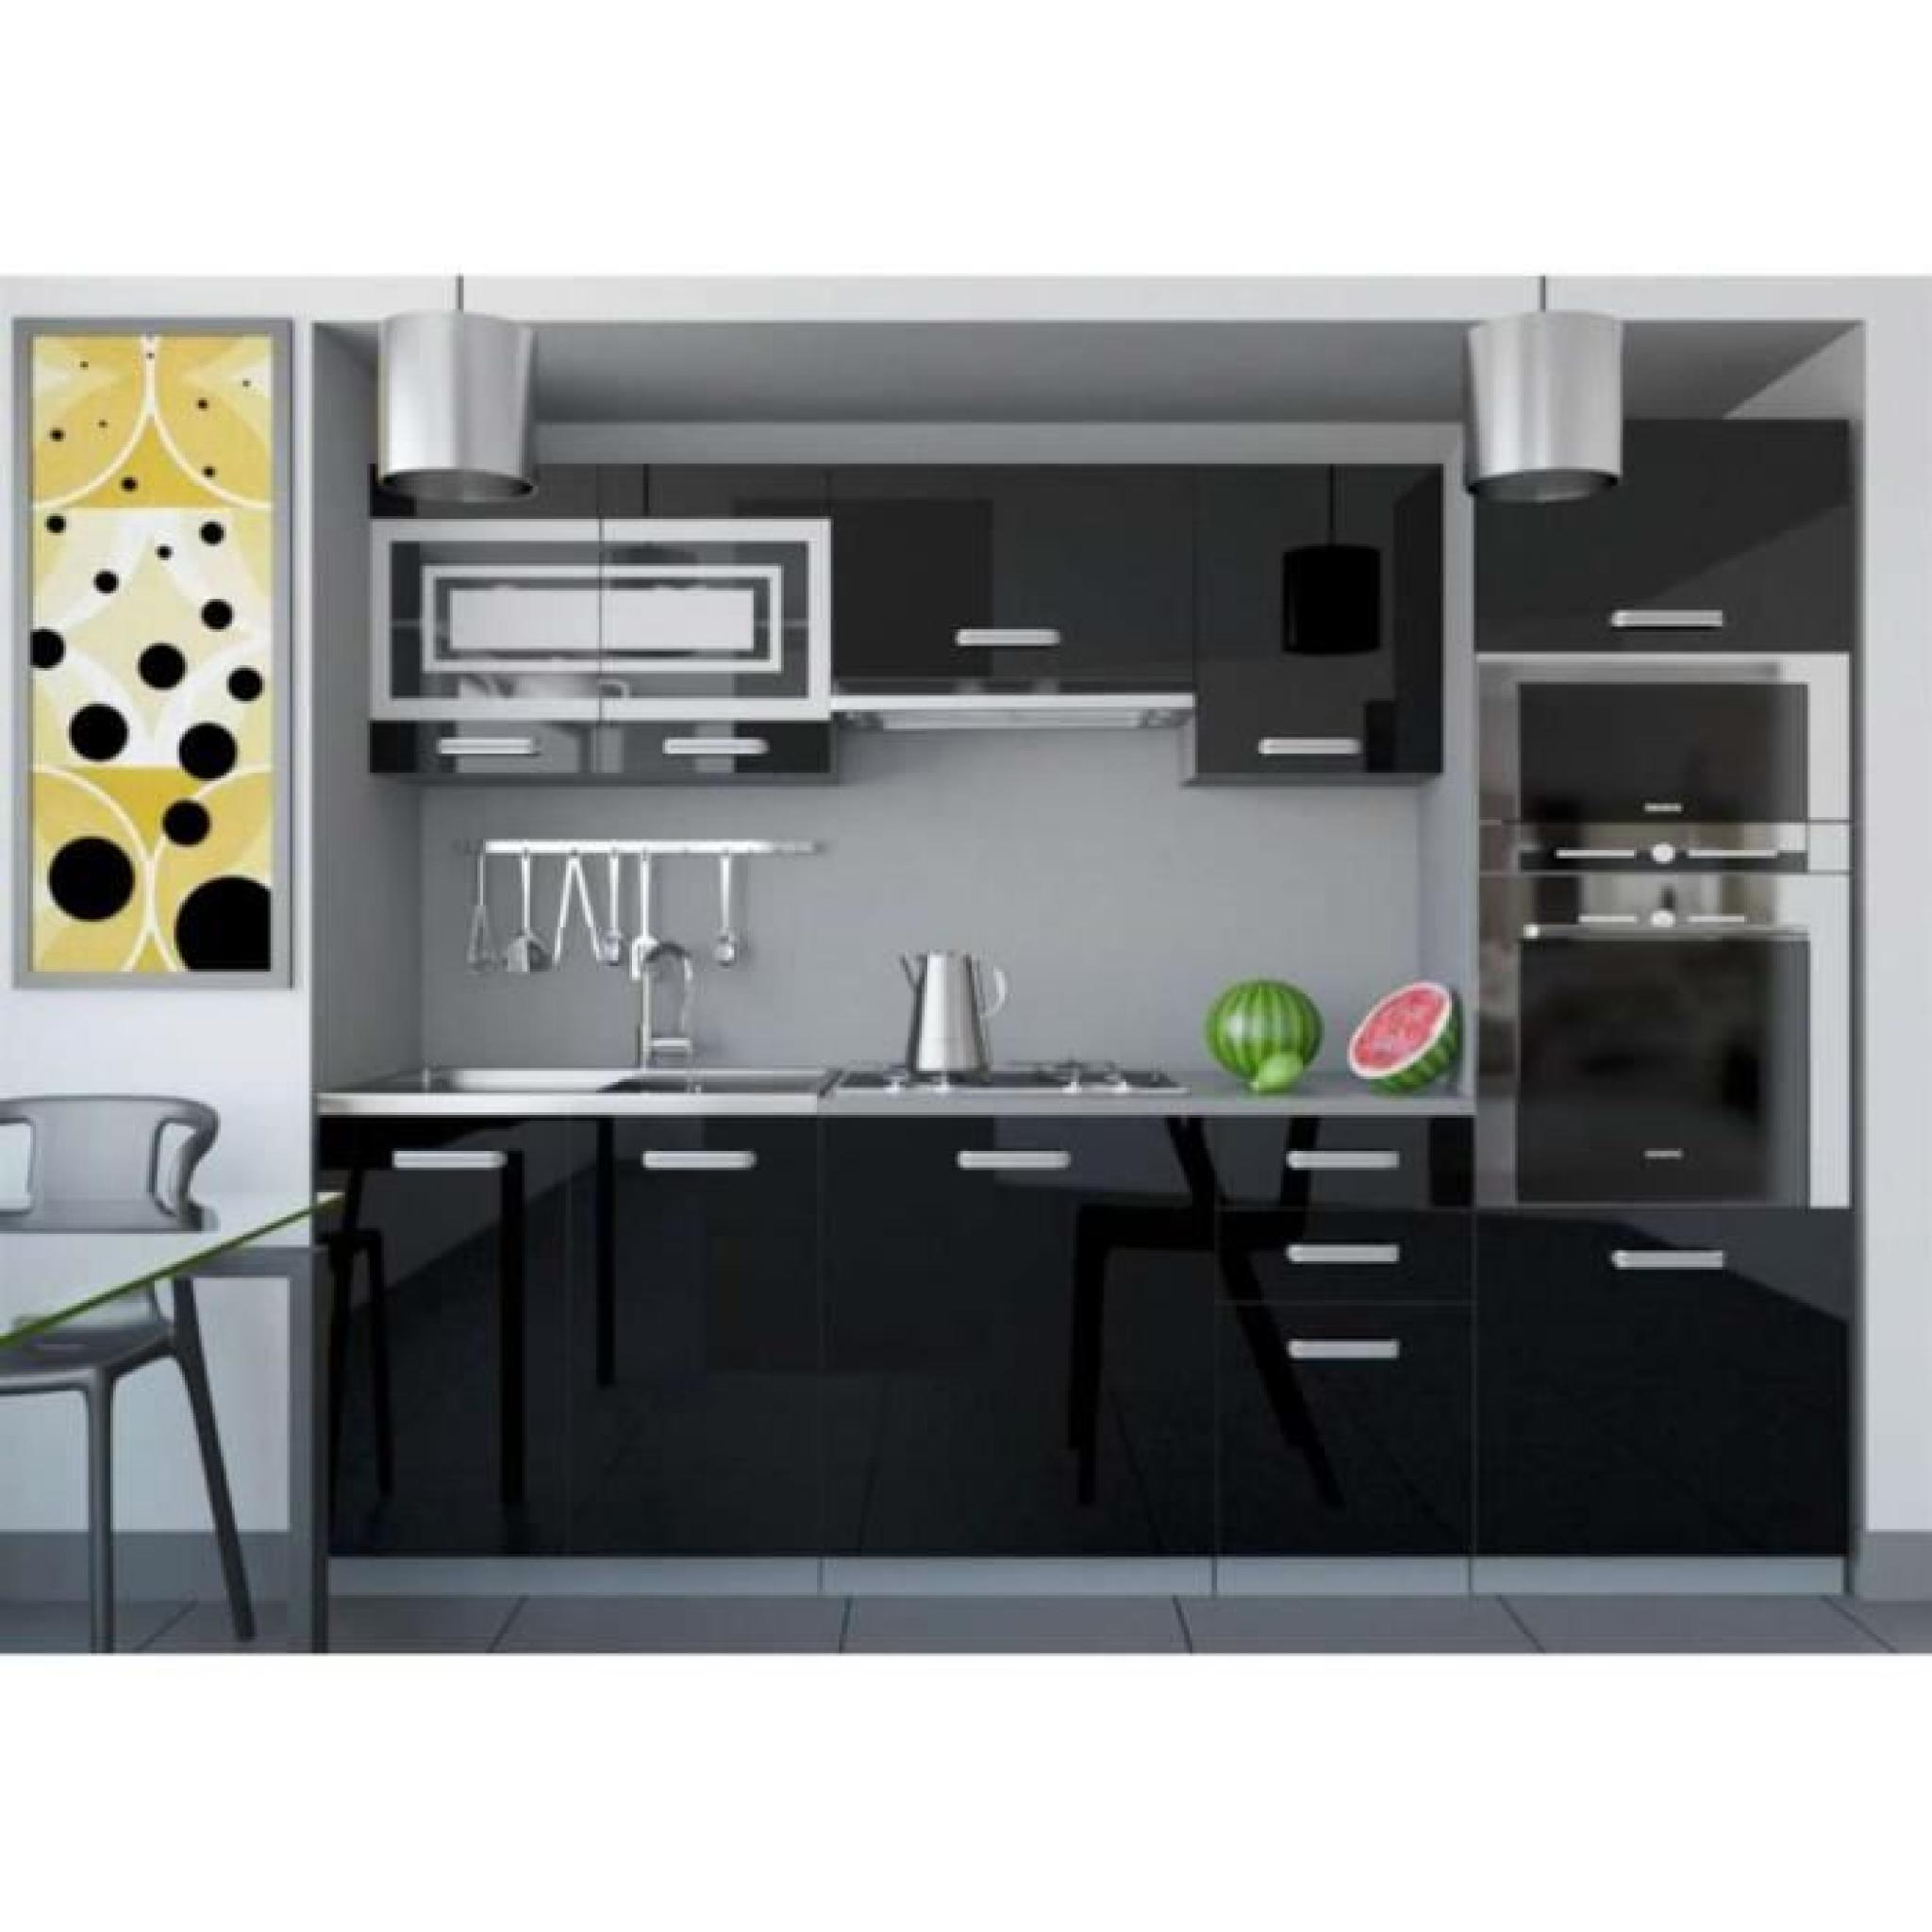 justhome paula 1 cuisine quip e compl te 240 cm couleur. Black Bedroom Furniture Sets. Home Design Ideas